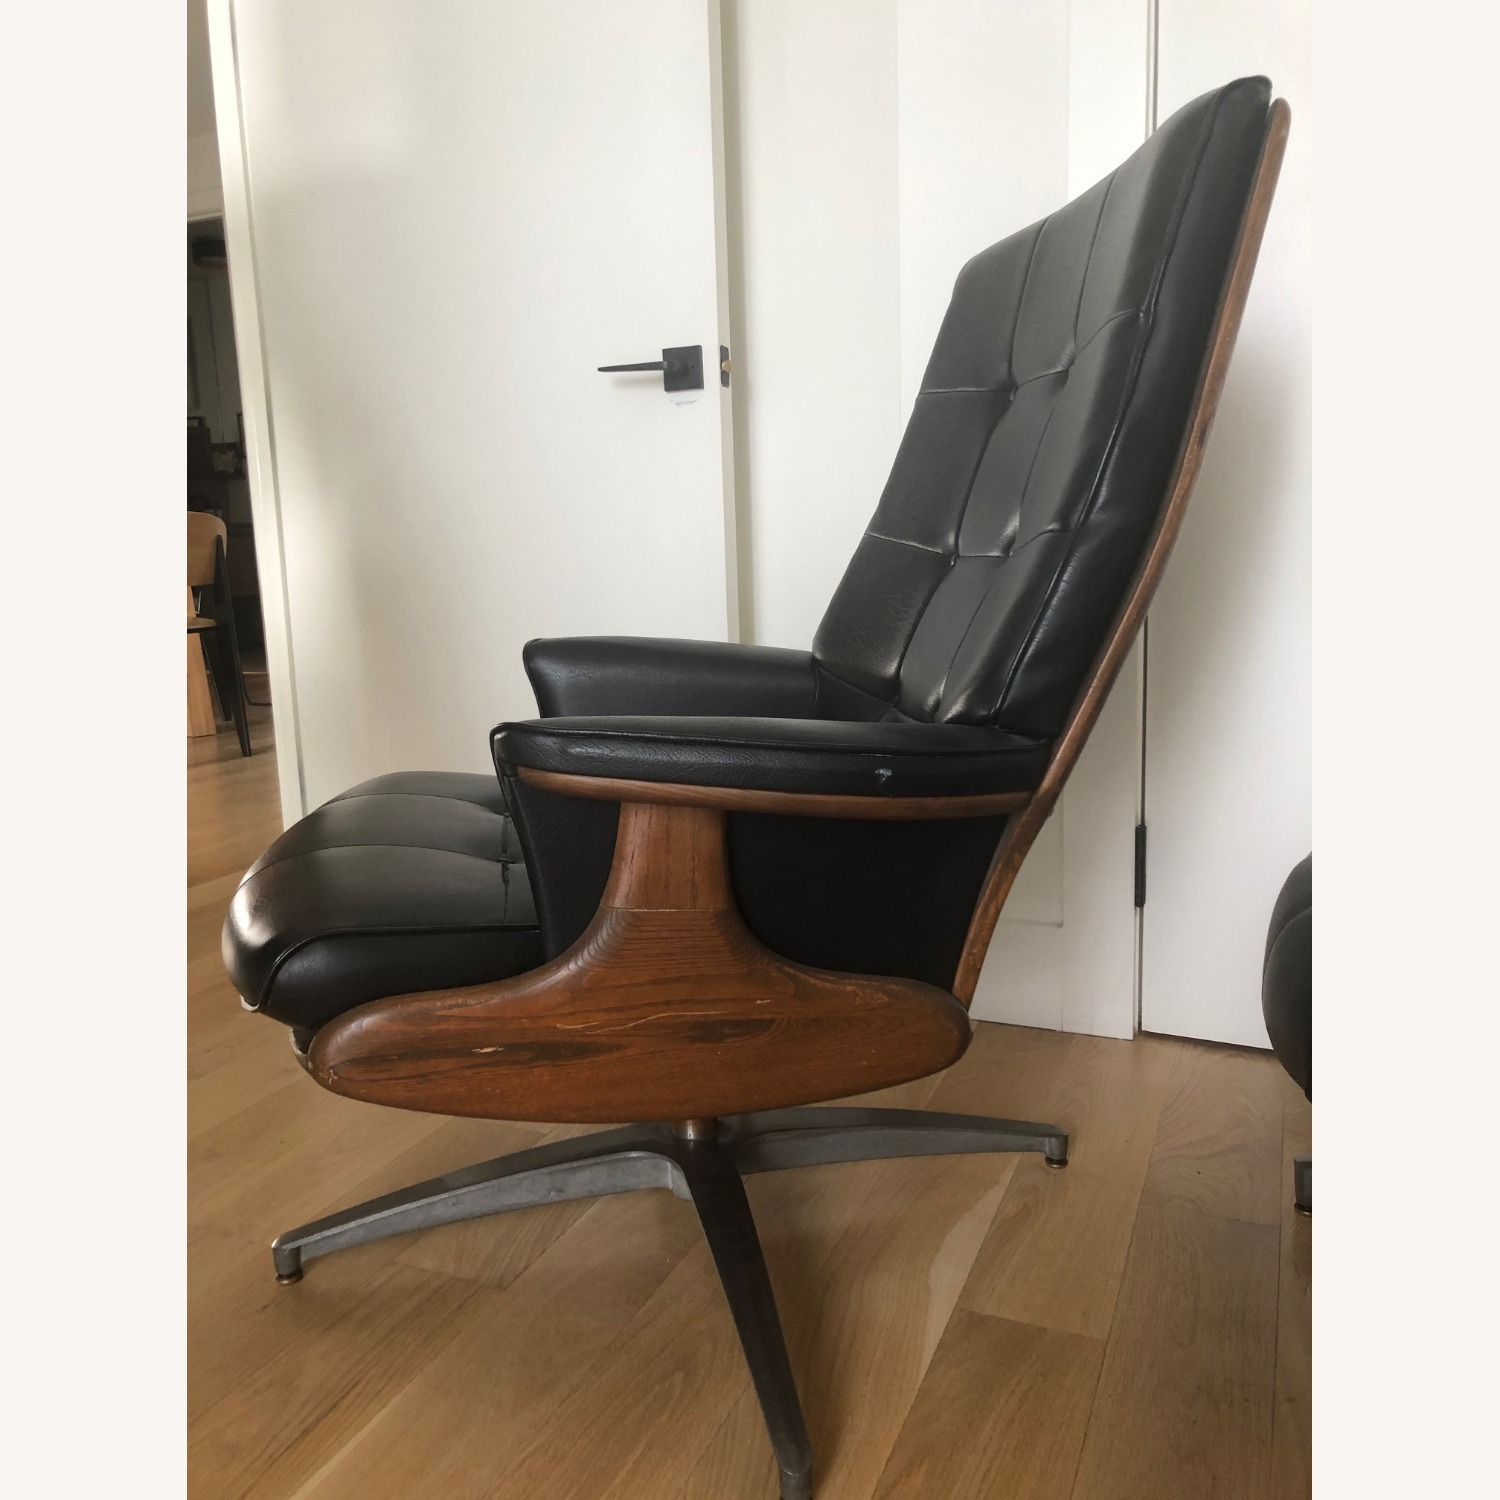 Vintage Black Leather Armchair with Foot Rest - image-9